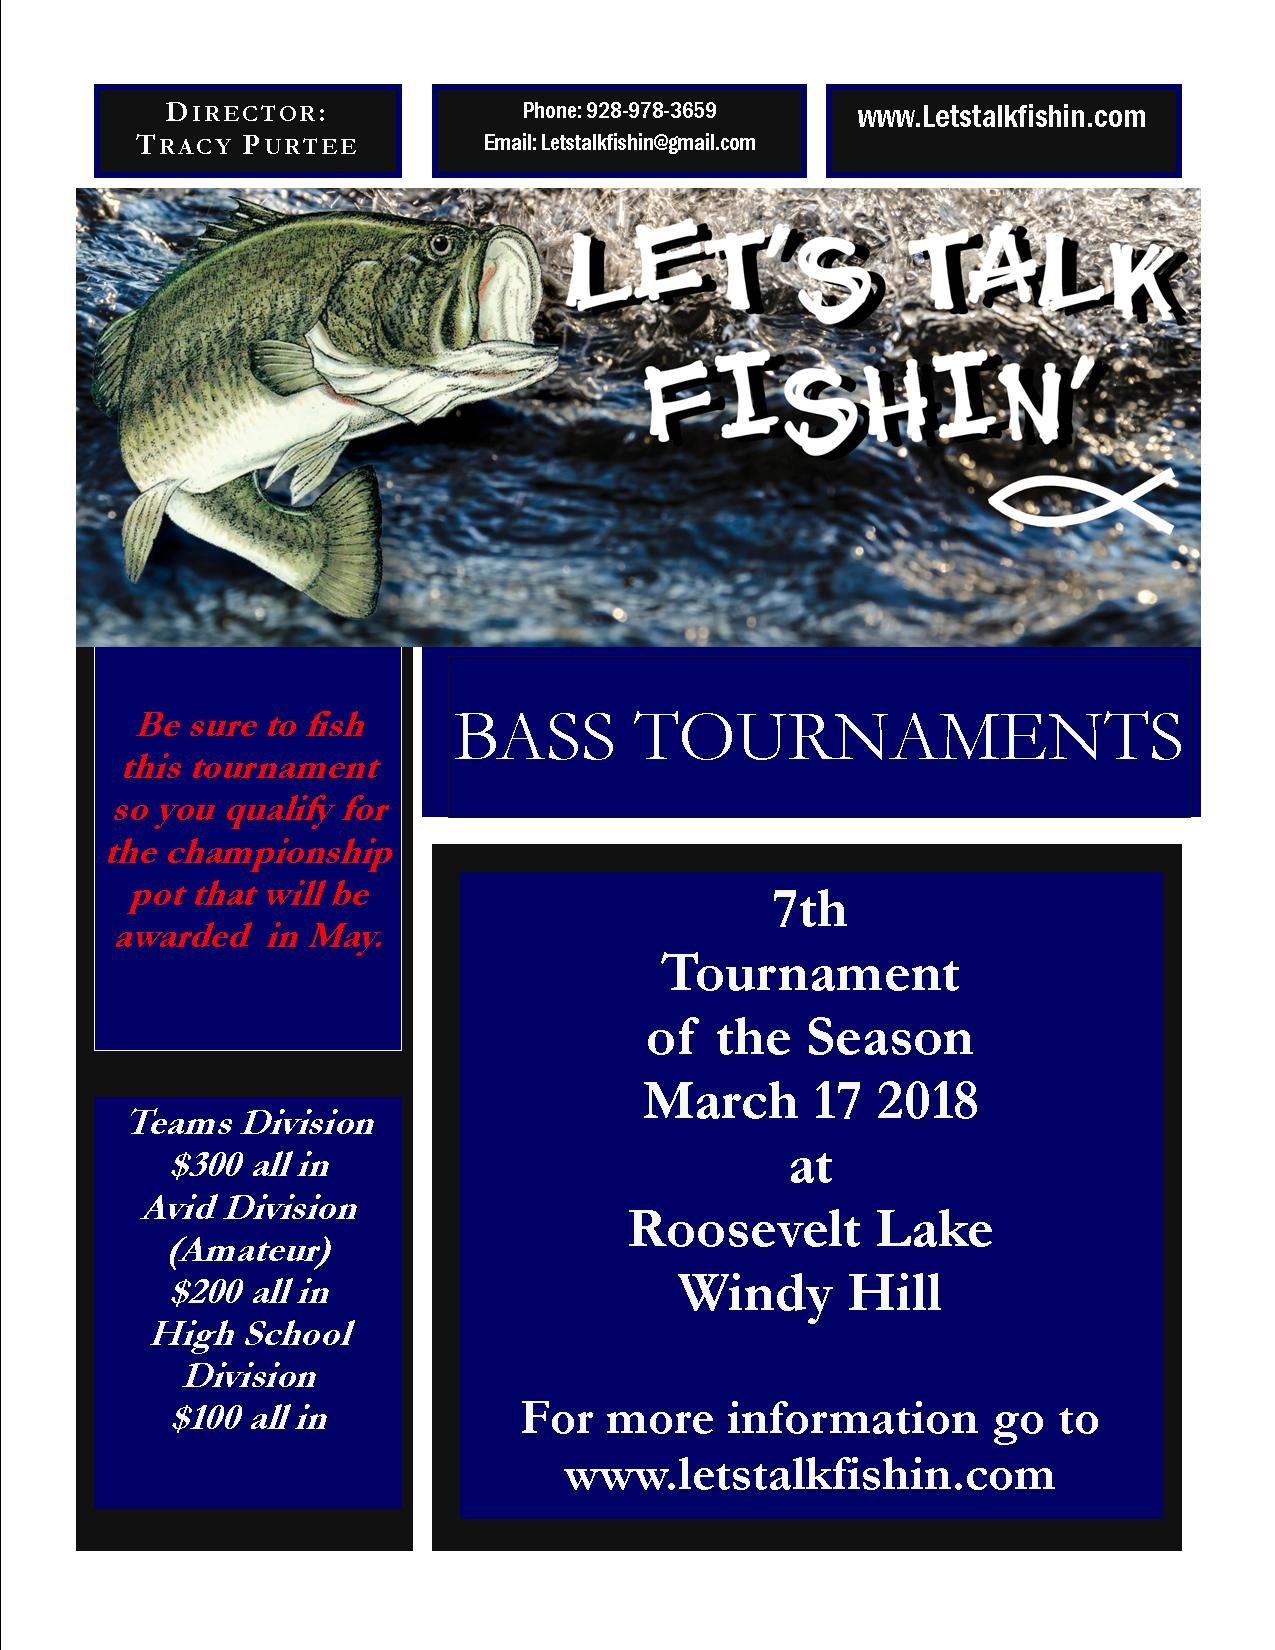 Click image for larger version  Name:7th Tournament.jpg Views:2169 Size:283.6 KB ID:96826